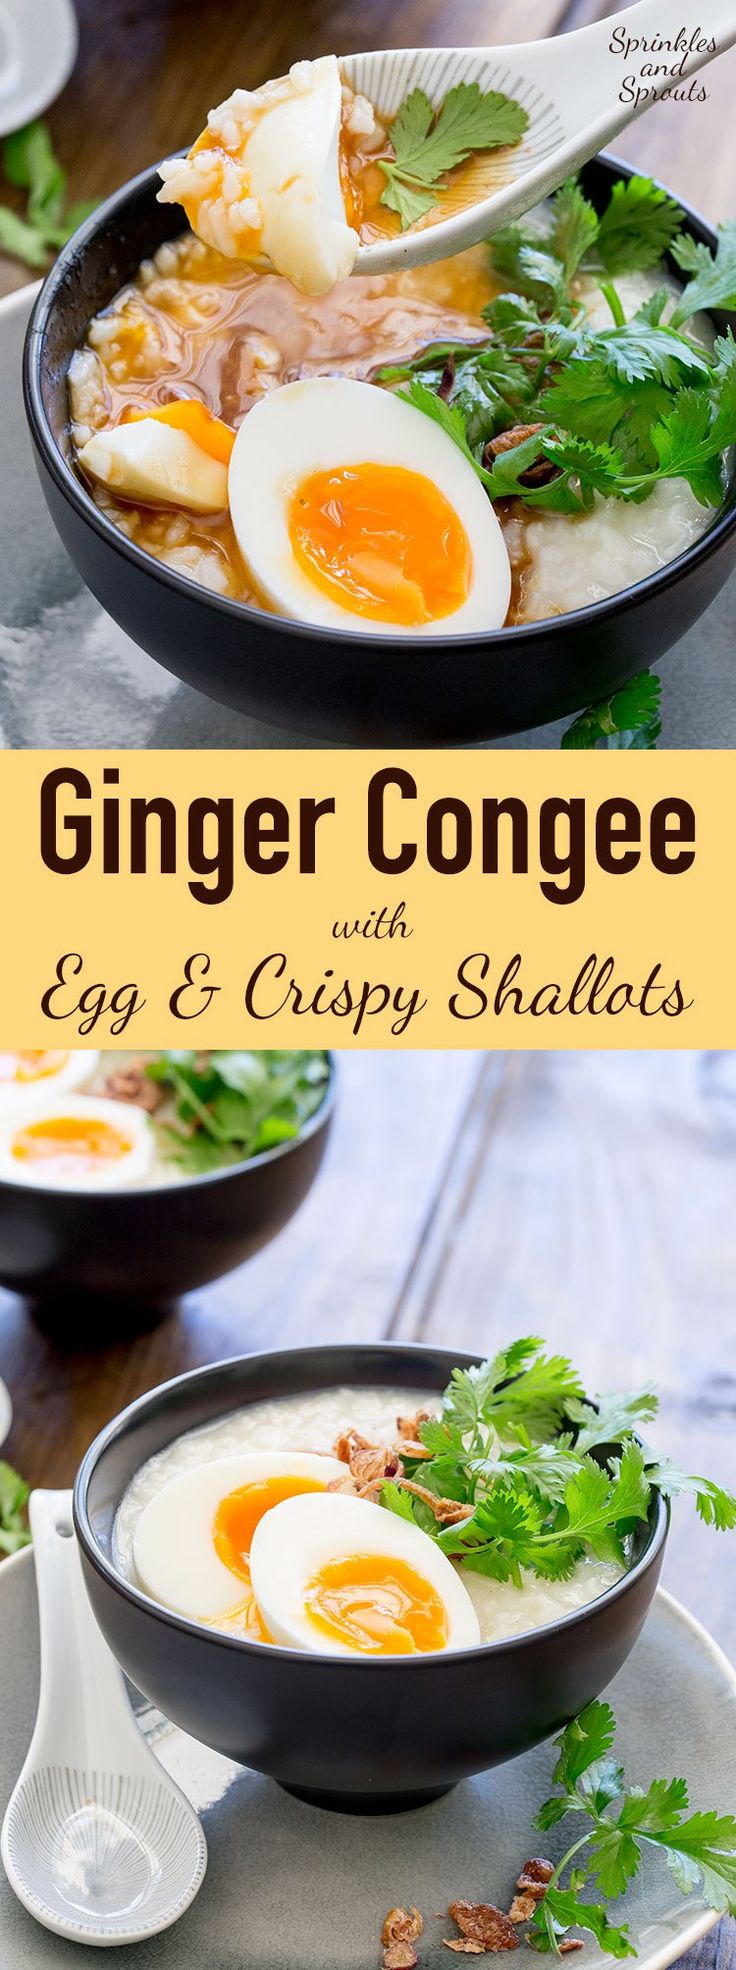 Ginger Congee with Egg and Crispy Shallots - This comforting savoury rice dish is a staple across many Asian countries. It is traditionally eaten as a breakfast in China, but it is so good that I love it curled up on the sofa late at night. This is food that feeds your soul as well as your belly. Honestly this just make you feel good!